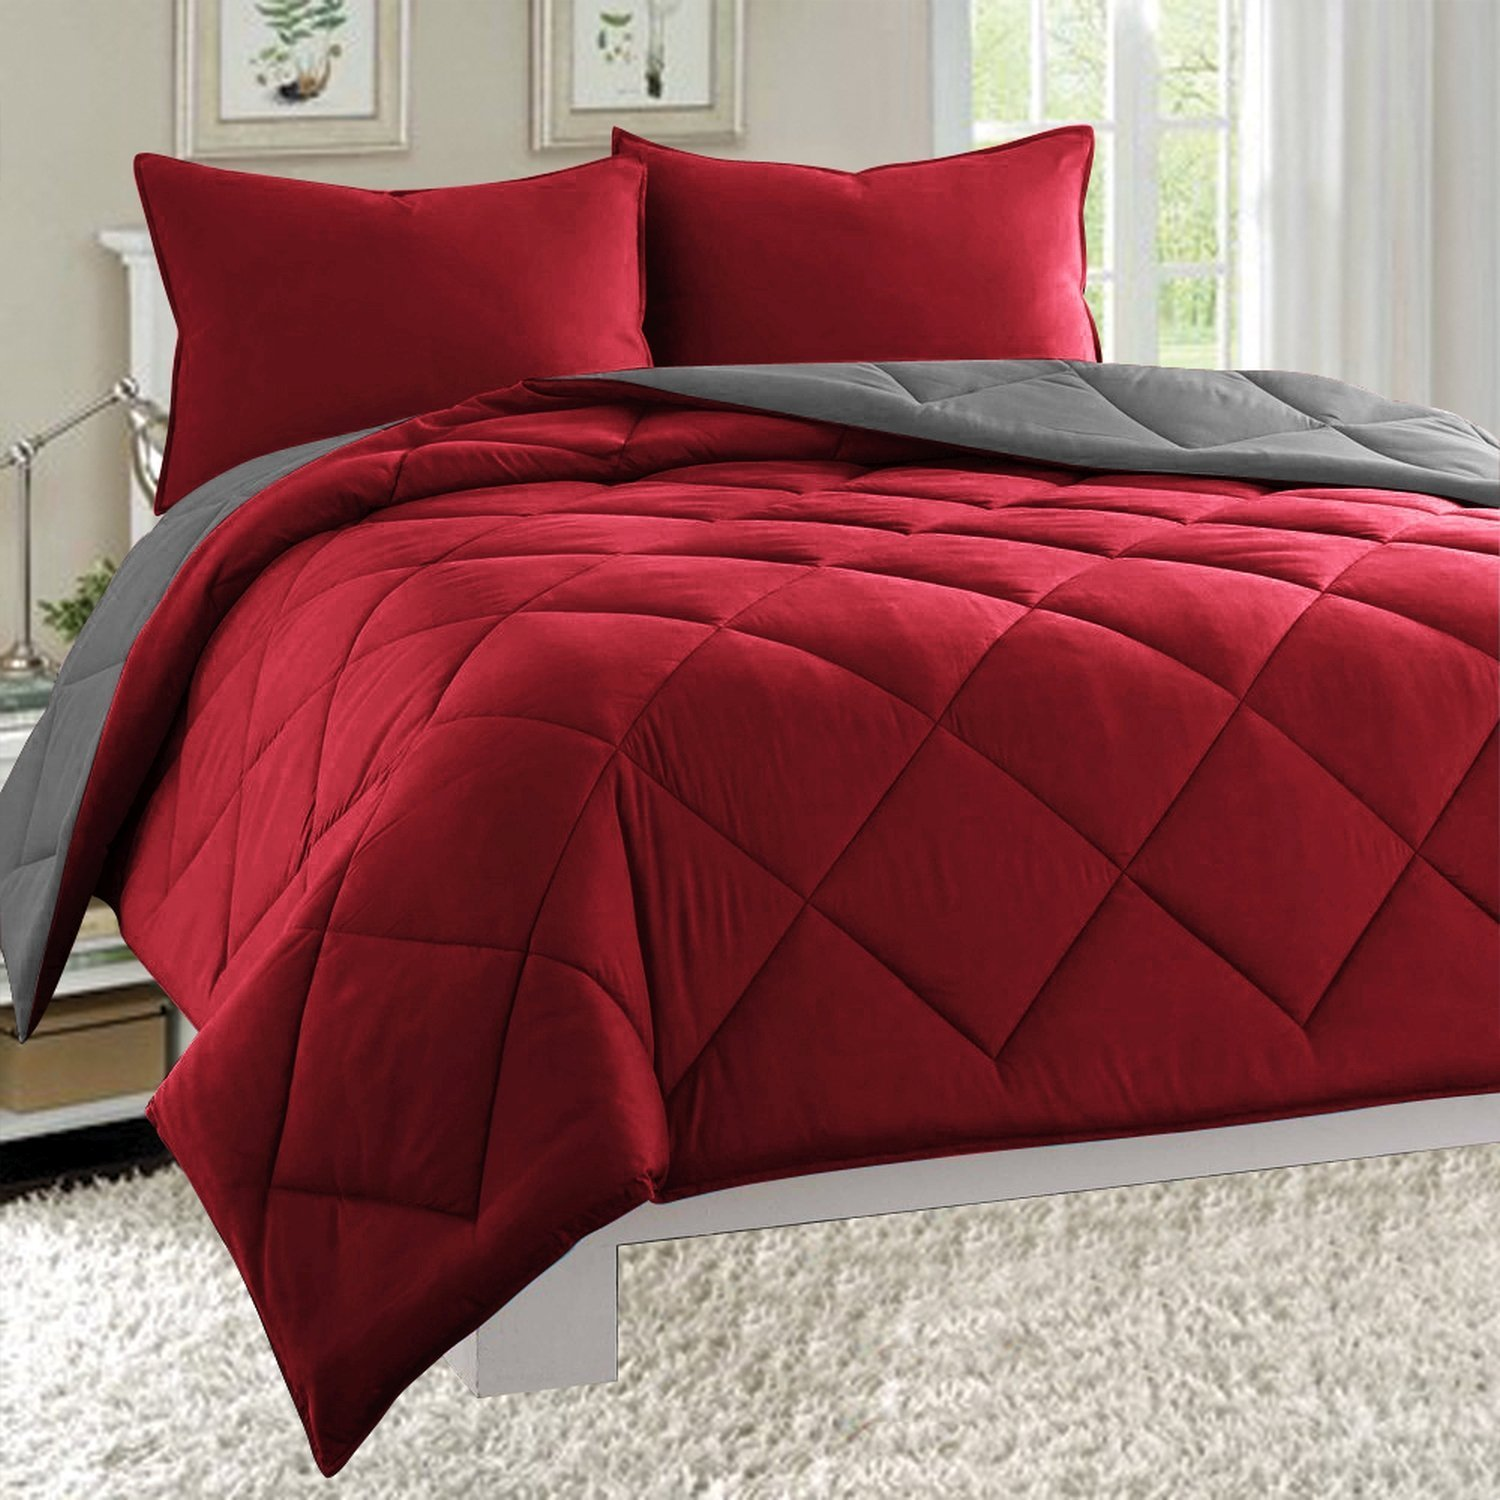 full xl size twin comforter aetherair sheets asli co